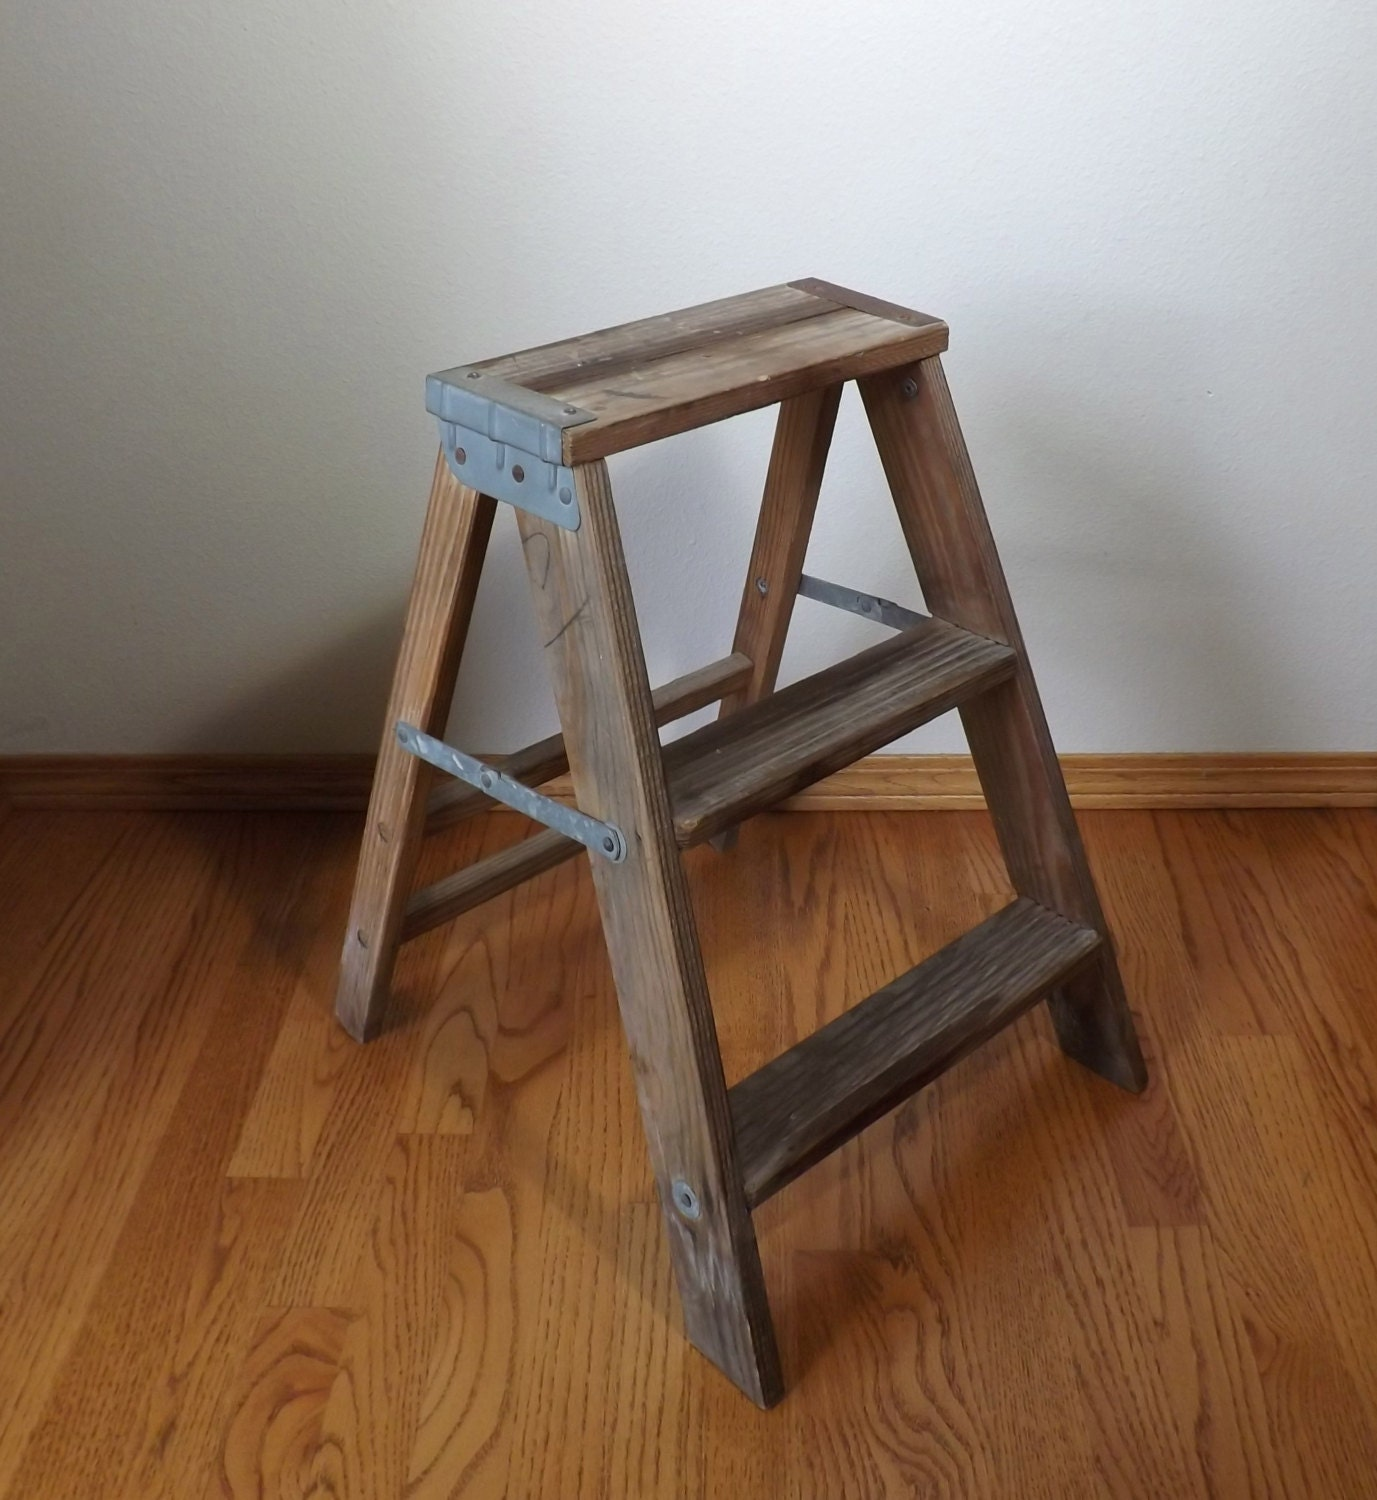 Wood Step Stool Step Ladder Photography Prop Staging